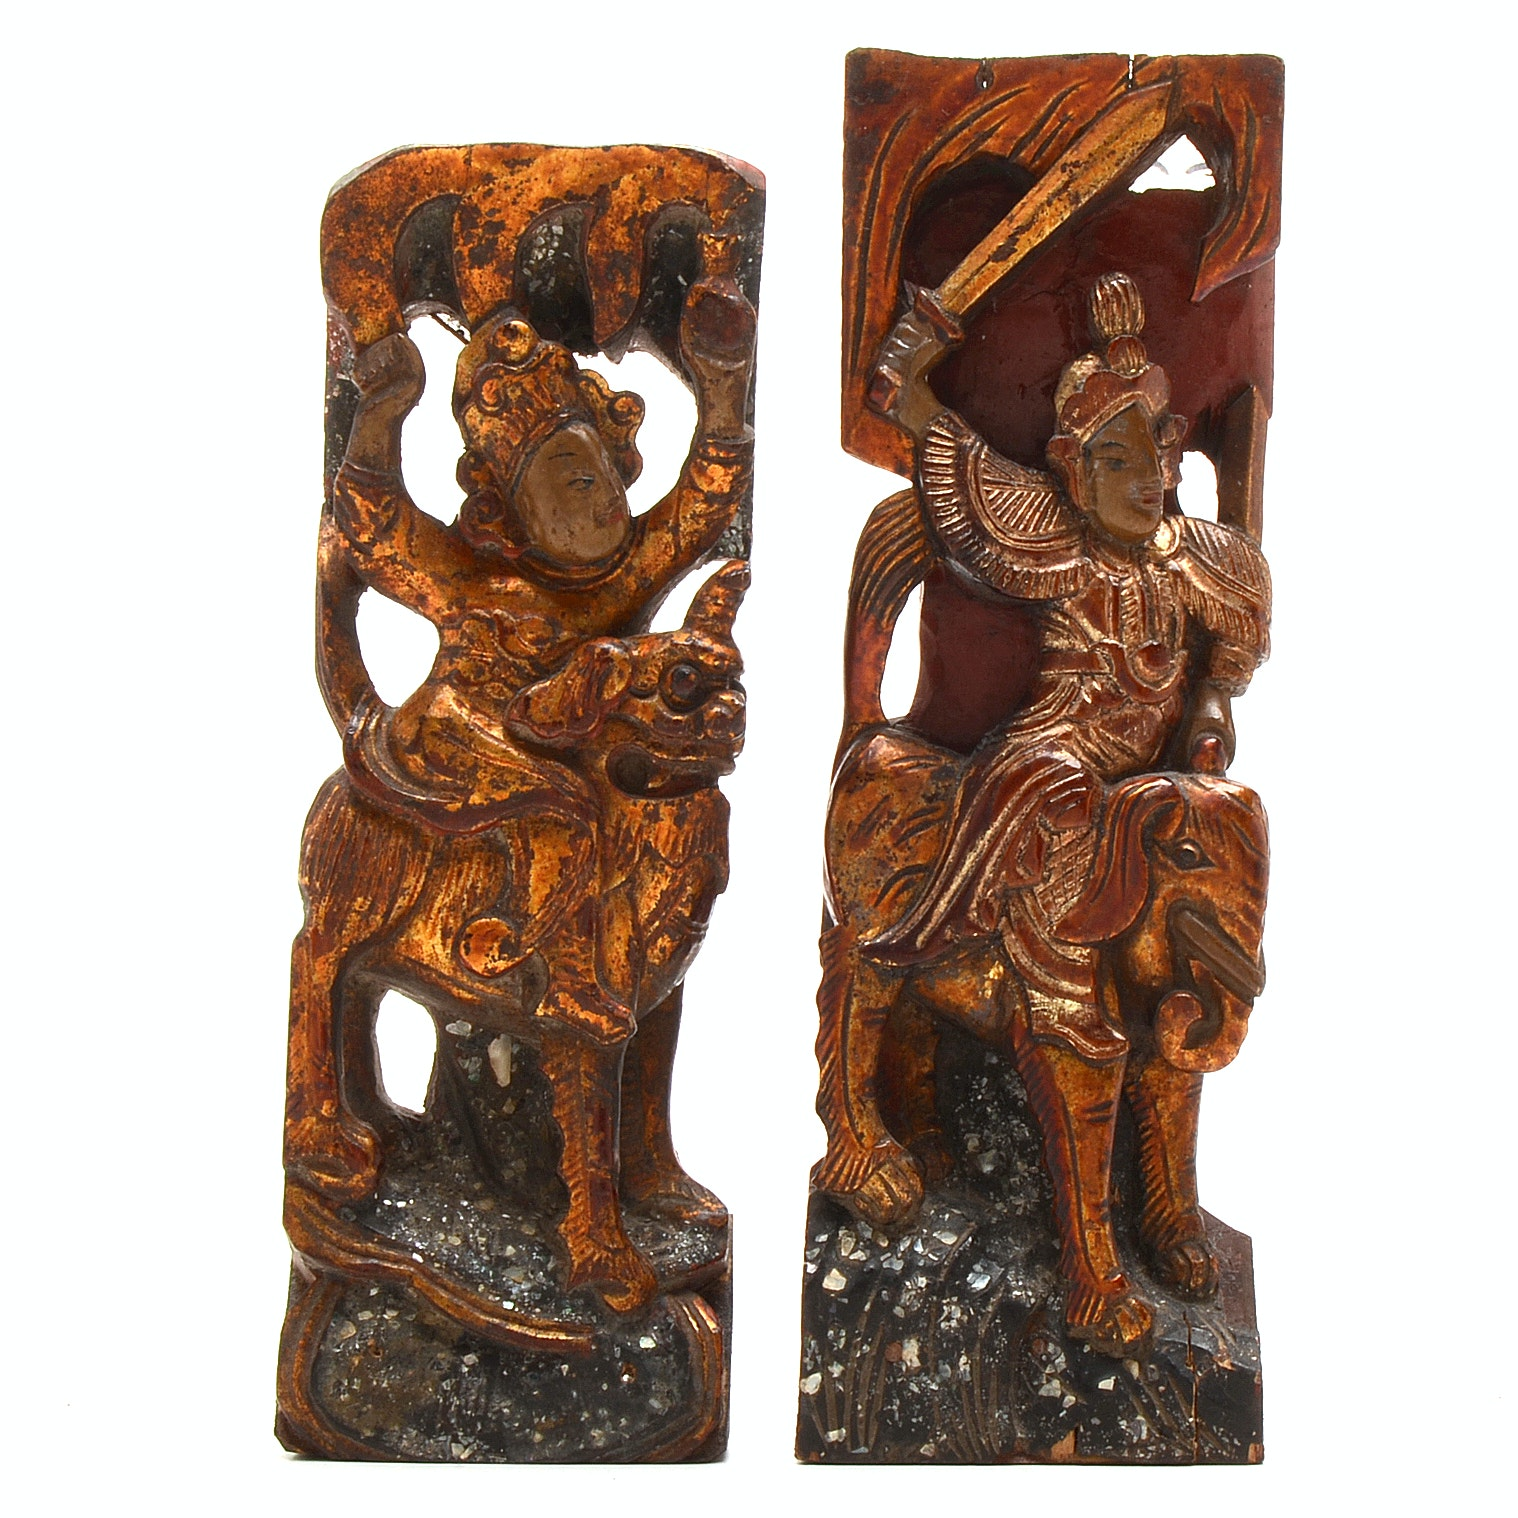 Pairing of Antique Chinese Wood Carvings of Warriors with Beasts